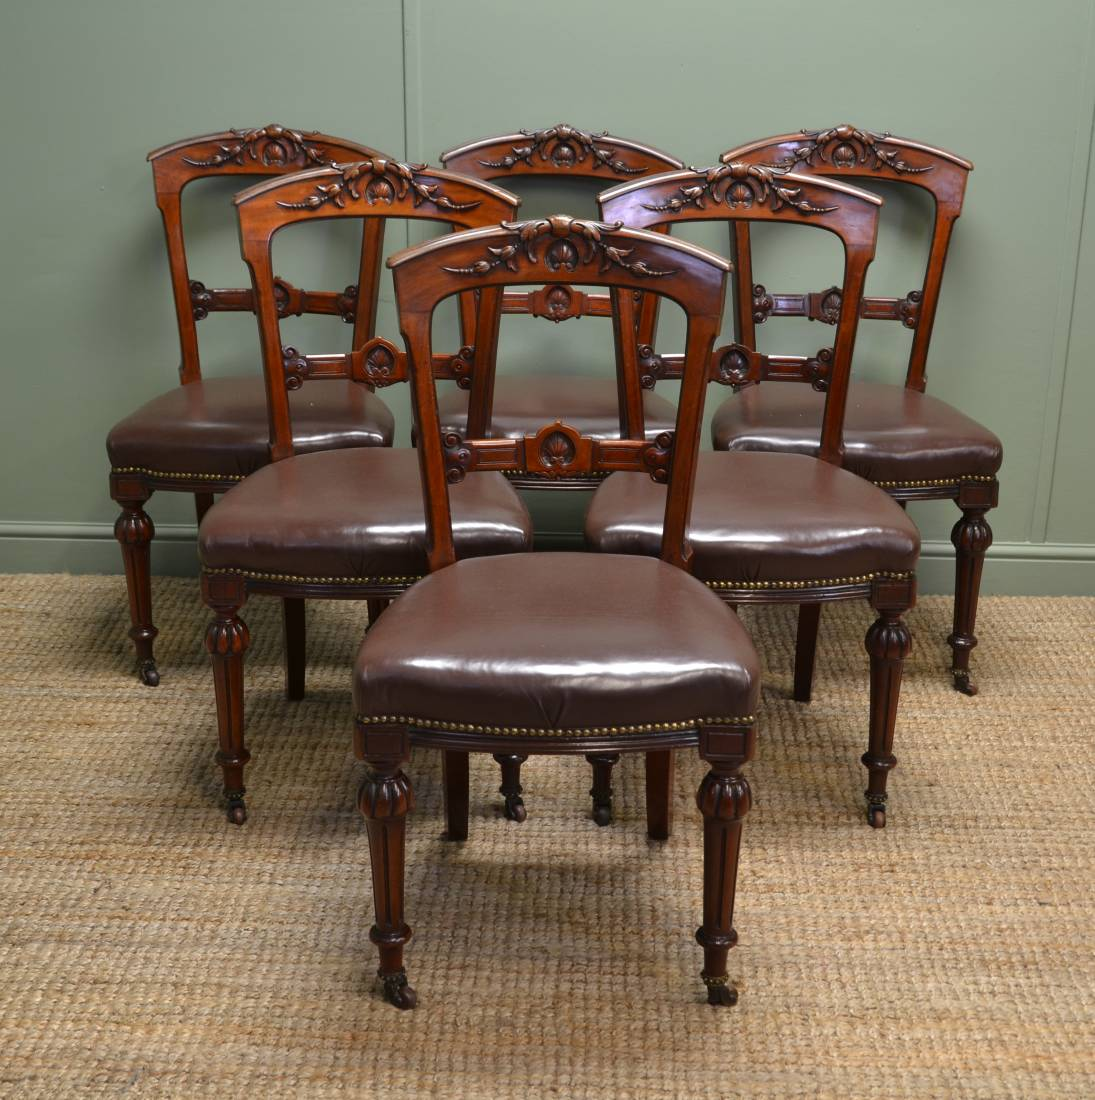 Vintage Chairs Antique Victorian Chairs Antiques World